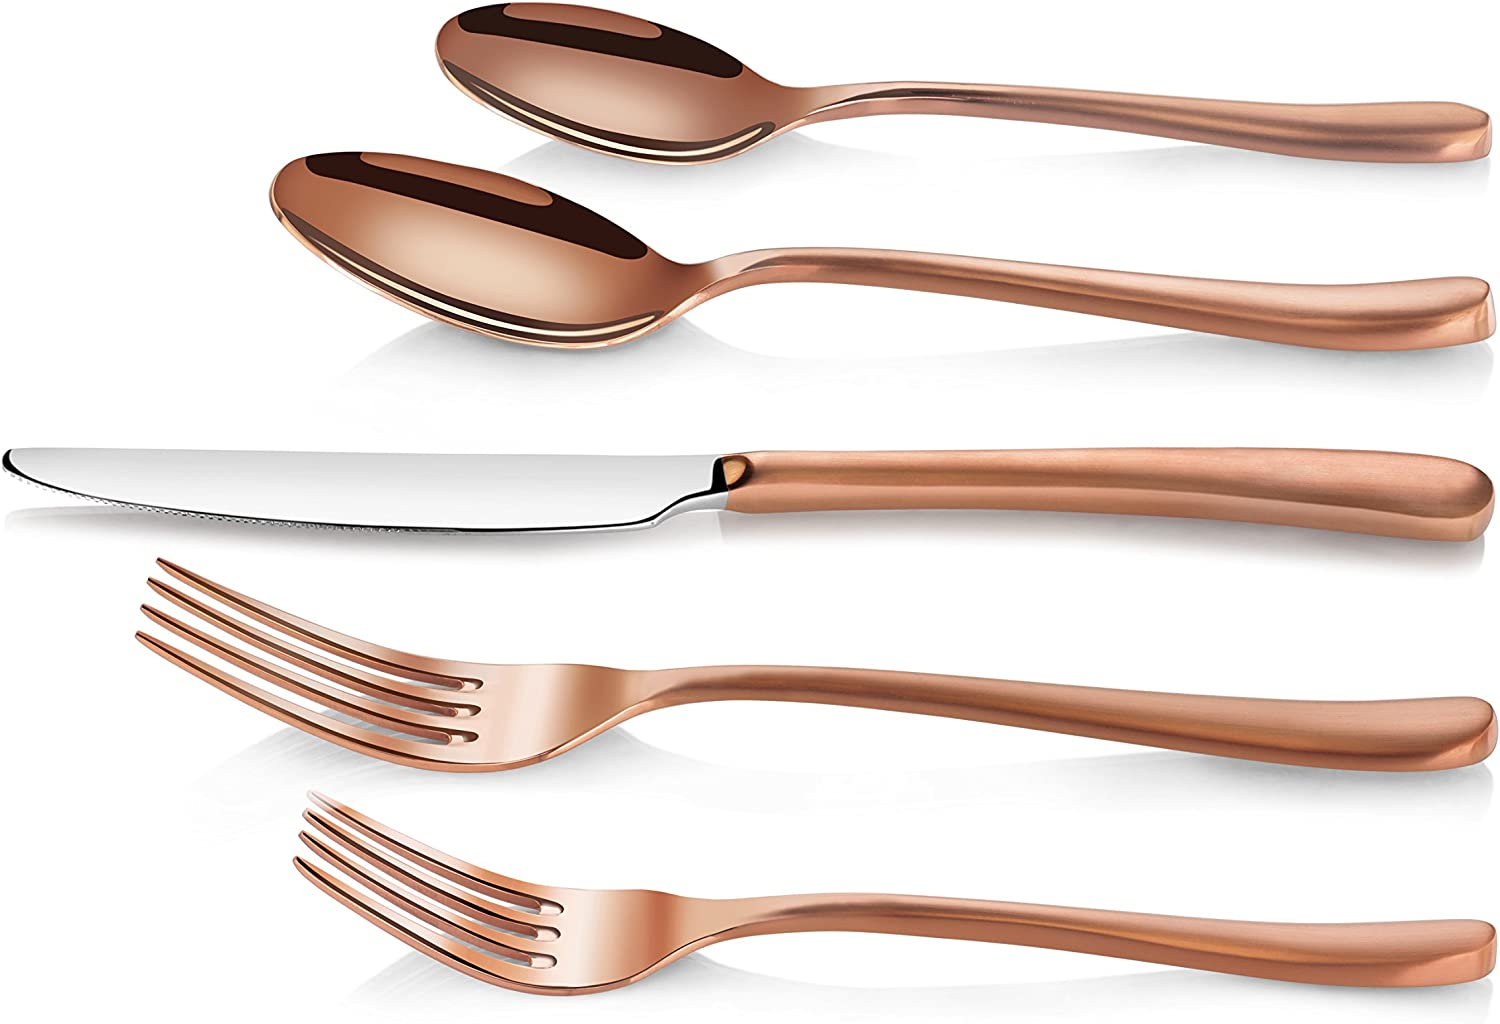 Service for 4 Silver New Star Foodservice Inc. Artaste 56525 Rain II Forged 18//10 Stainless Steel Flatware 20 Piece Set